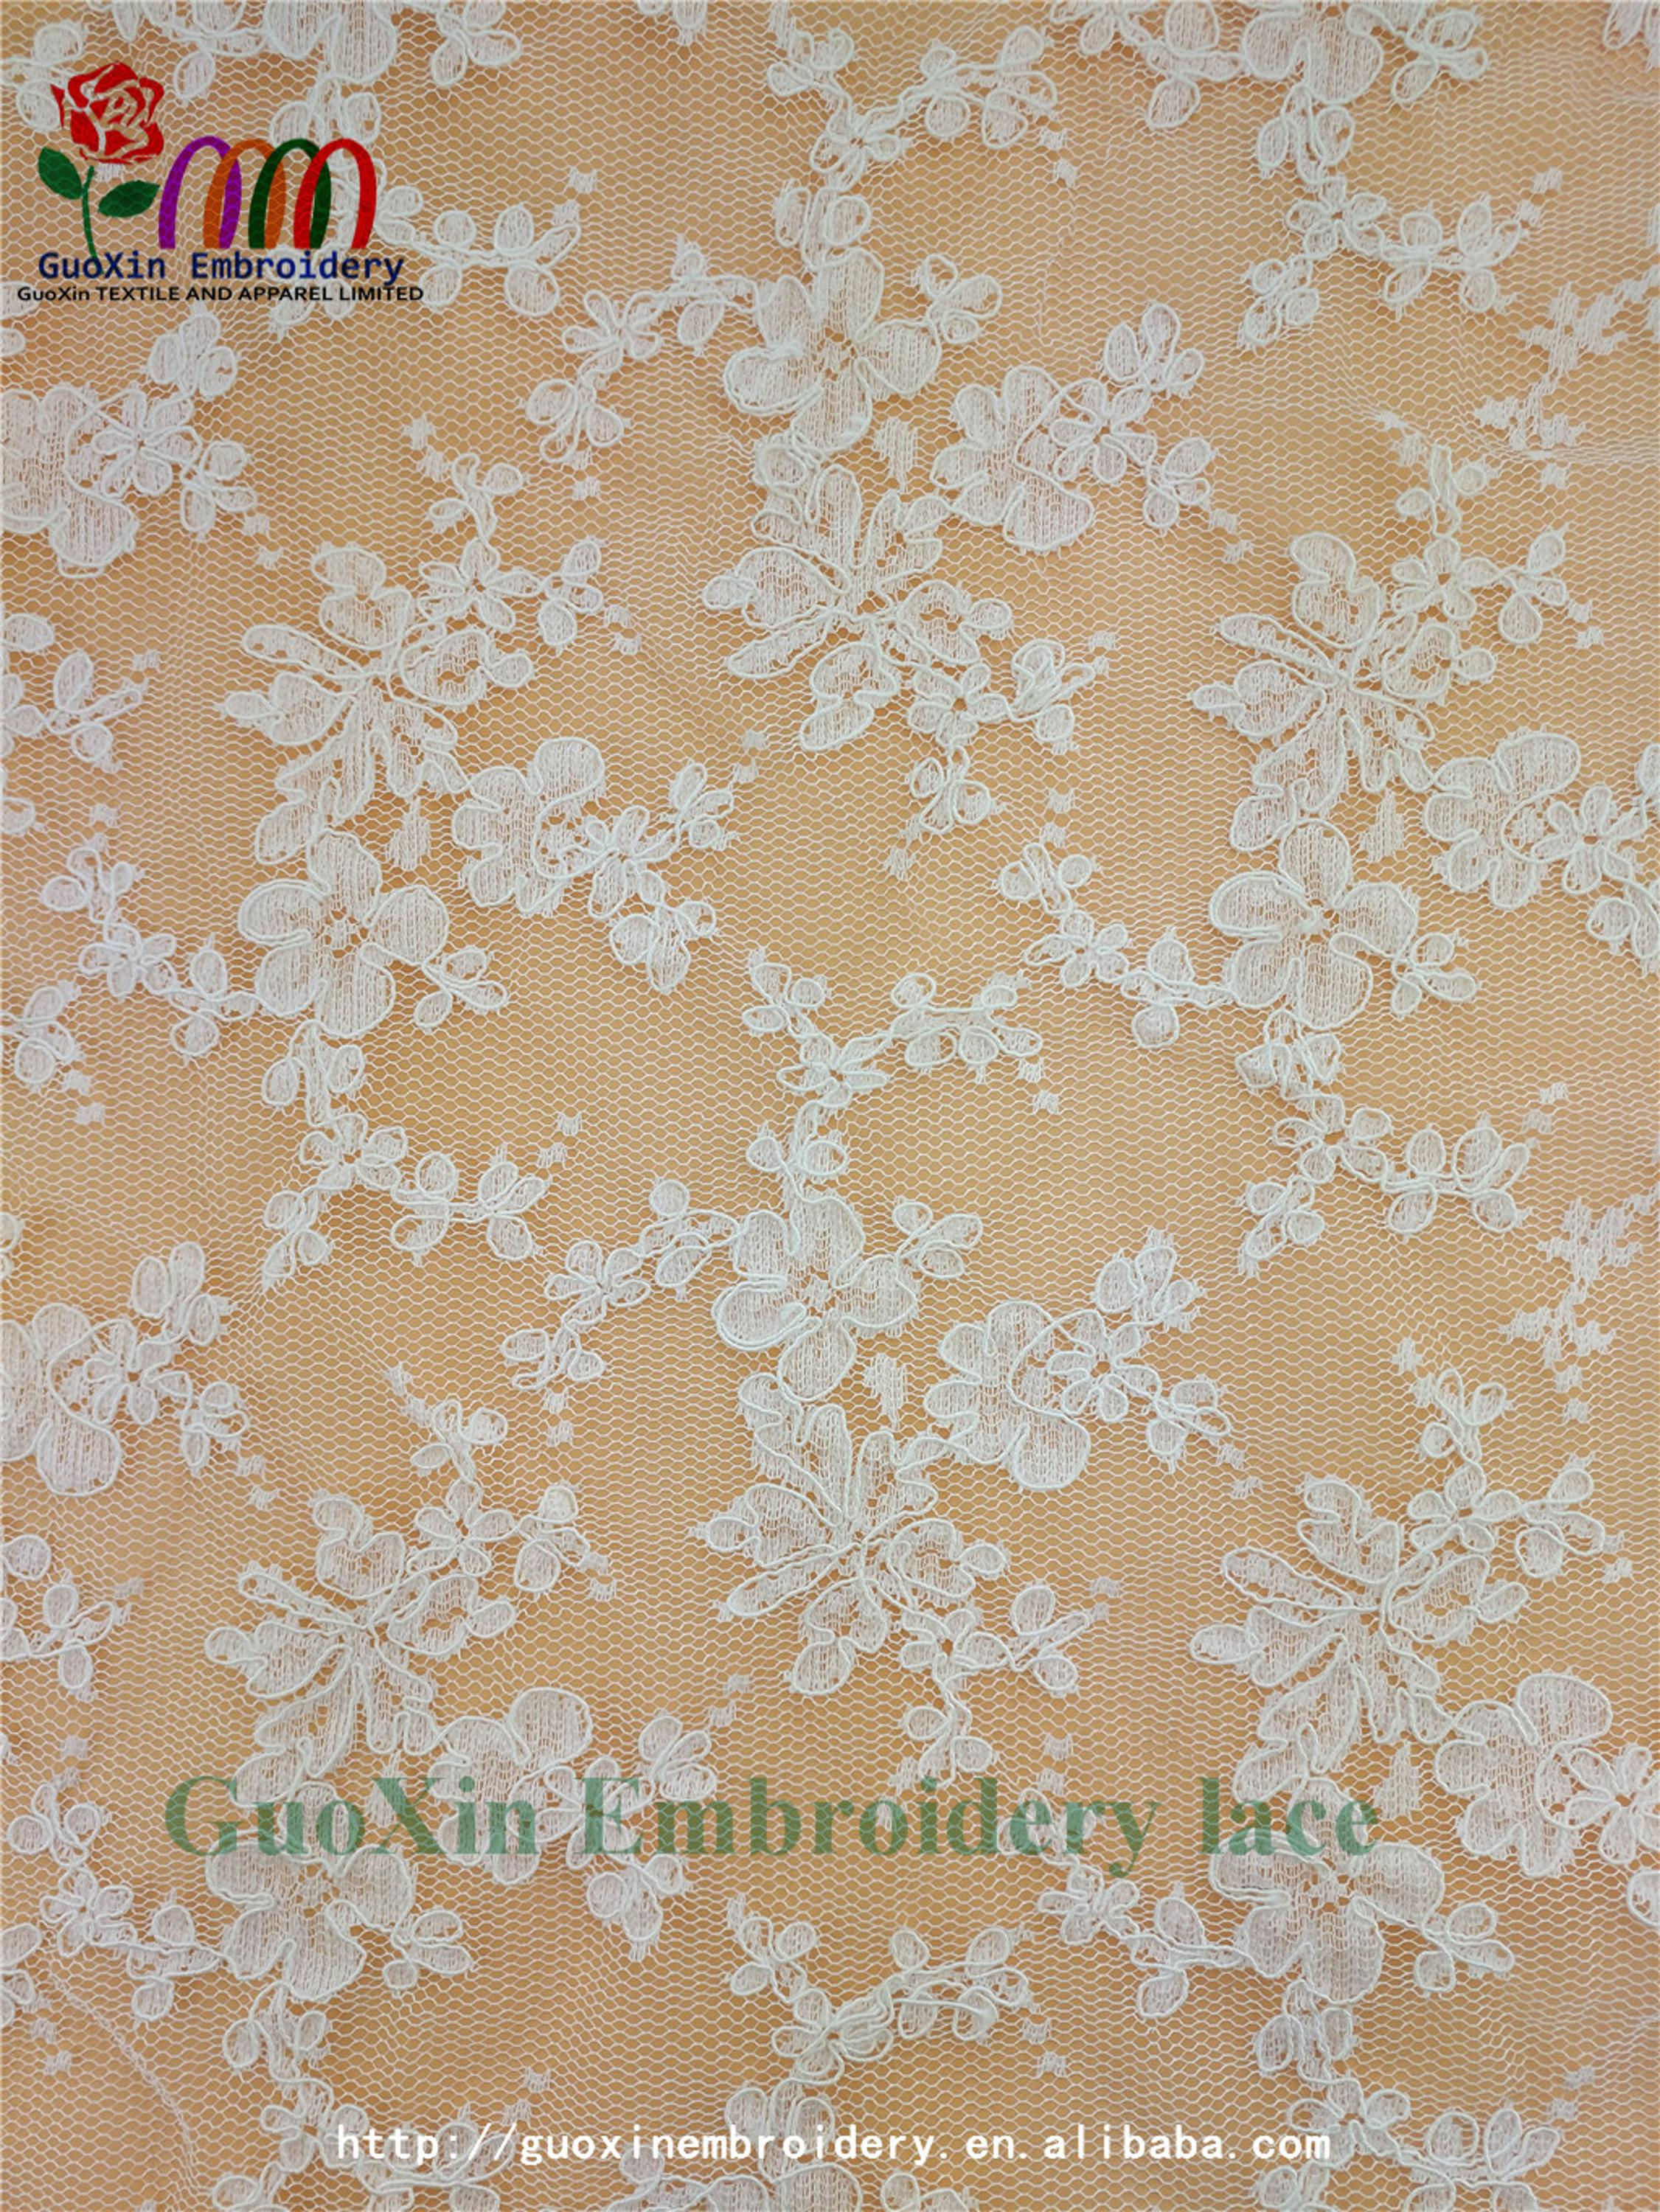 factory wholesale ivory embroidered french lace fabric with cording (4).jpg